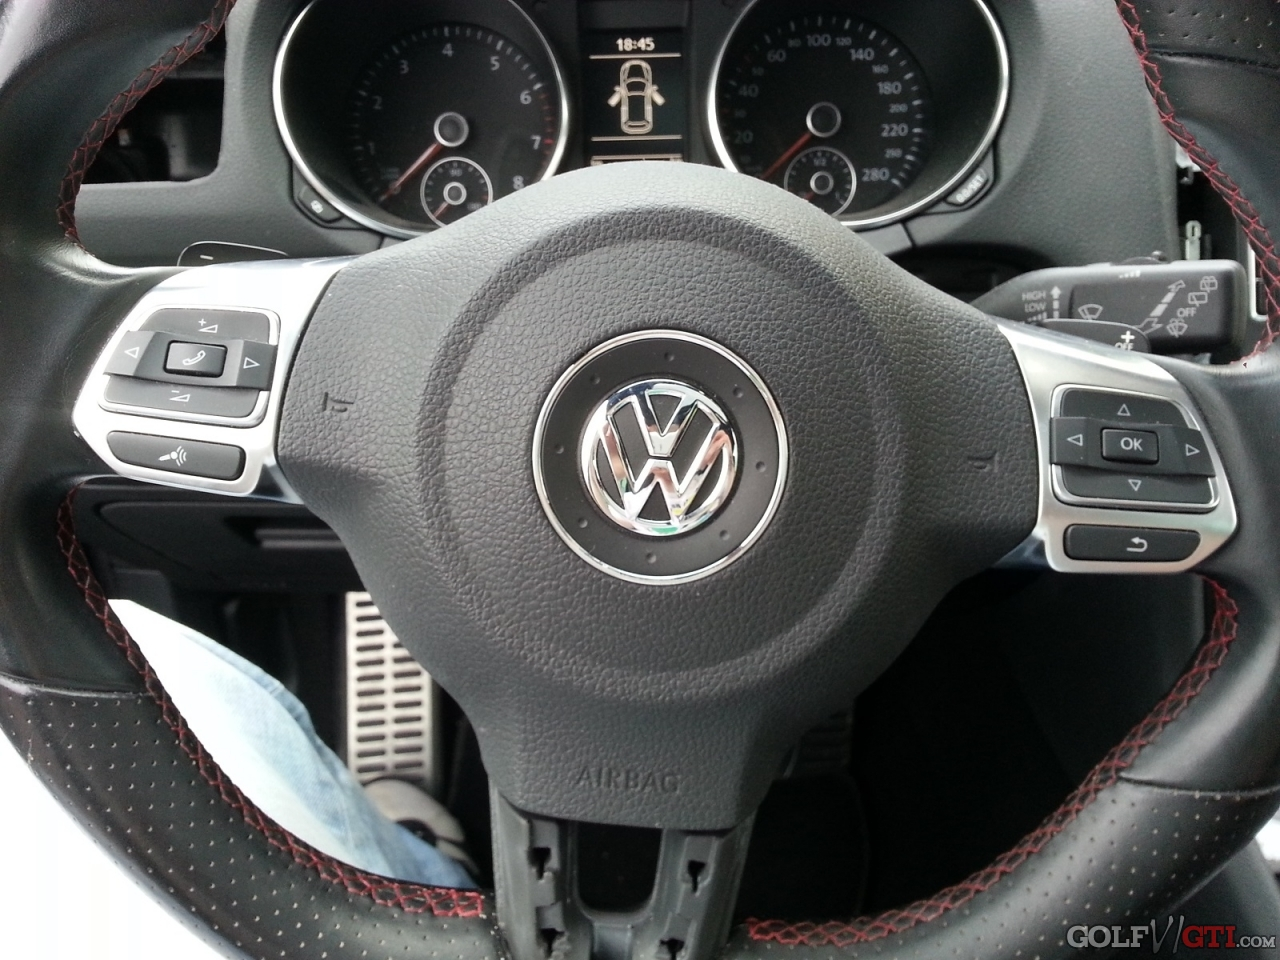 interieur lackieren golf vi gti community forum